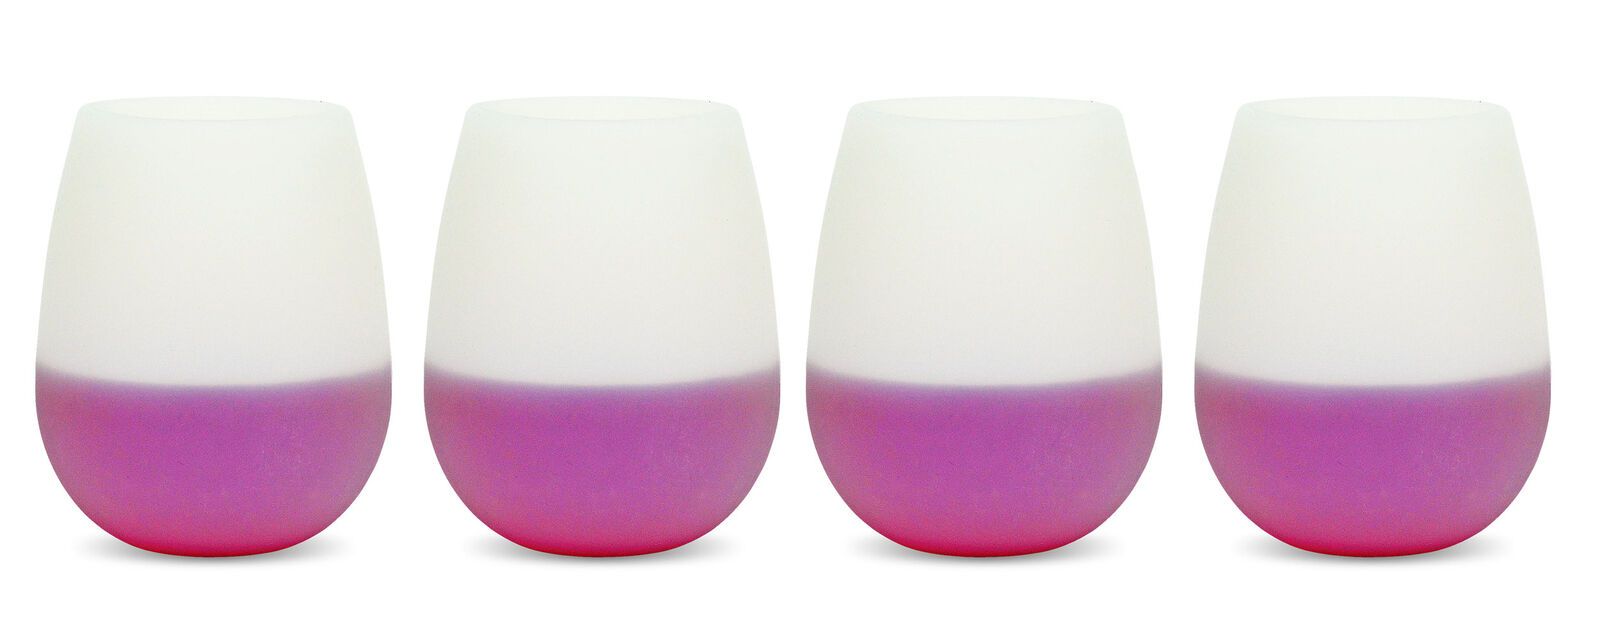 Camping Outdoors Pool Deck Party Silicone Vino Wine Glasses 4 Pack Tumbler 2go